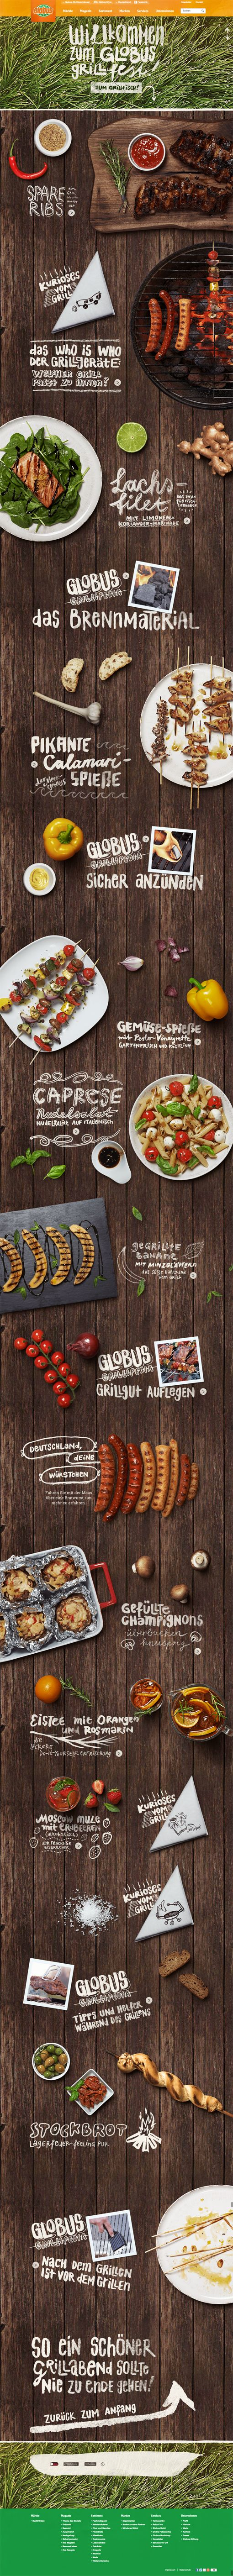 The Globus Grillfest by Kathrin Schmitz, via Behance | #webdesign #it #web #design #layout #userinterface #website #webdesign < repinned by www.BlickeDeeler.de | Take a look at www.WebsiteDesign-Hamburg.de